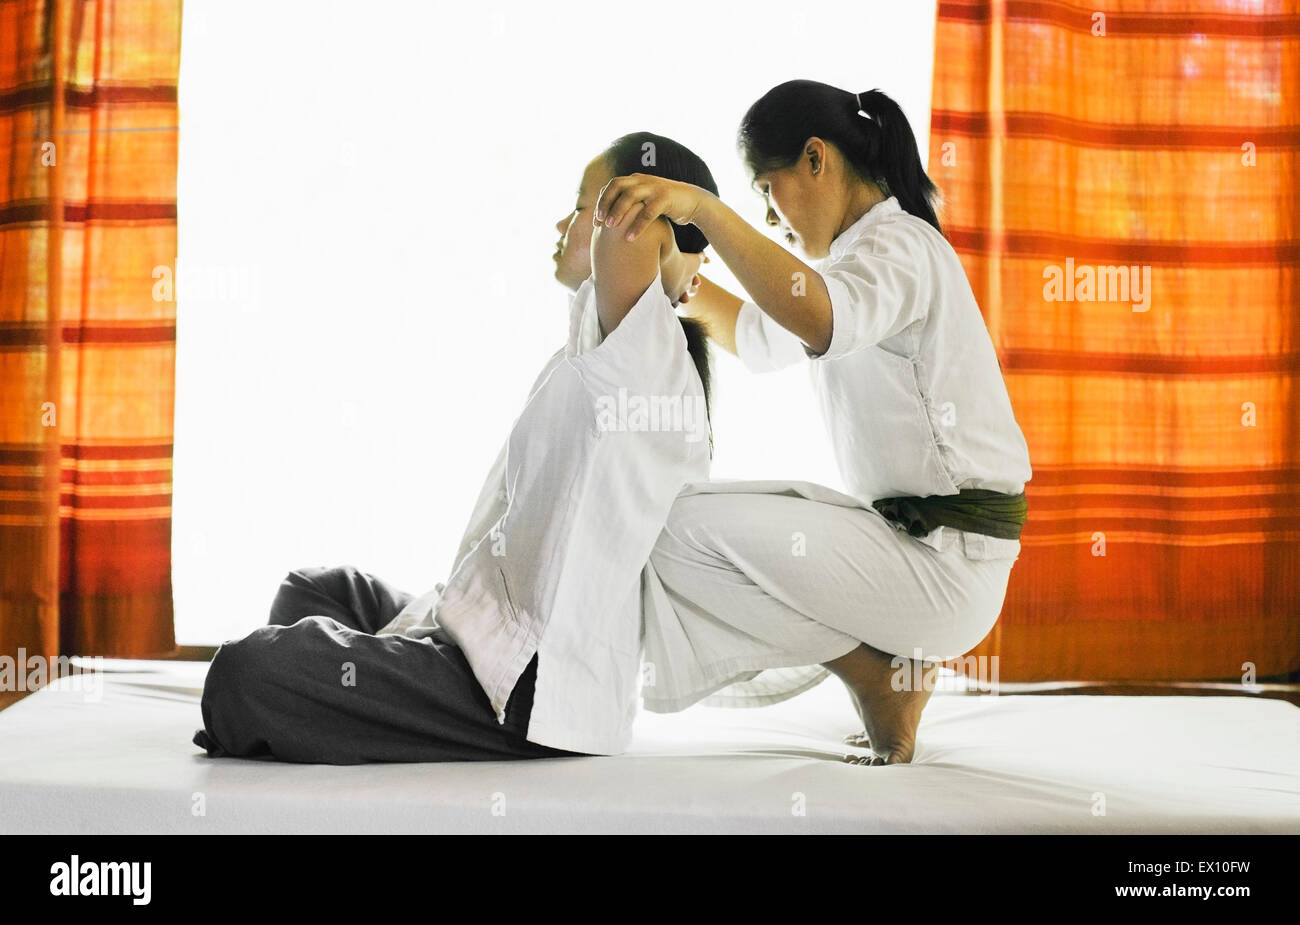 Sip Sen, or traditional Lao Massage at The Spa at La Residence Phou Vao, Luang Prabang, Laos. - Stock Image